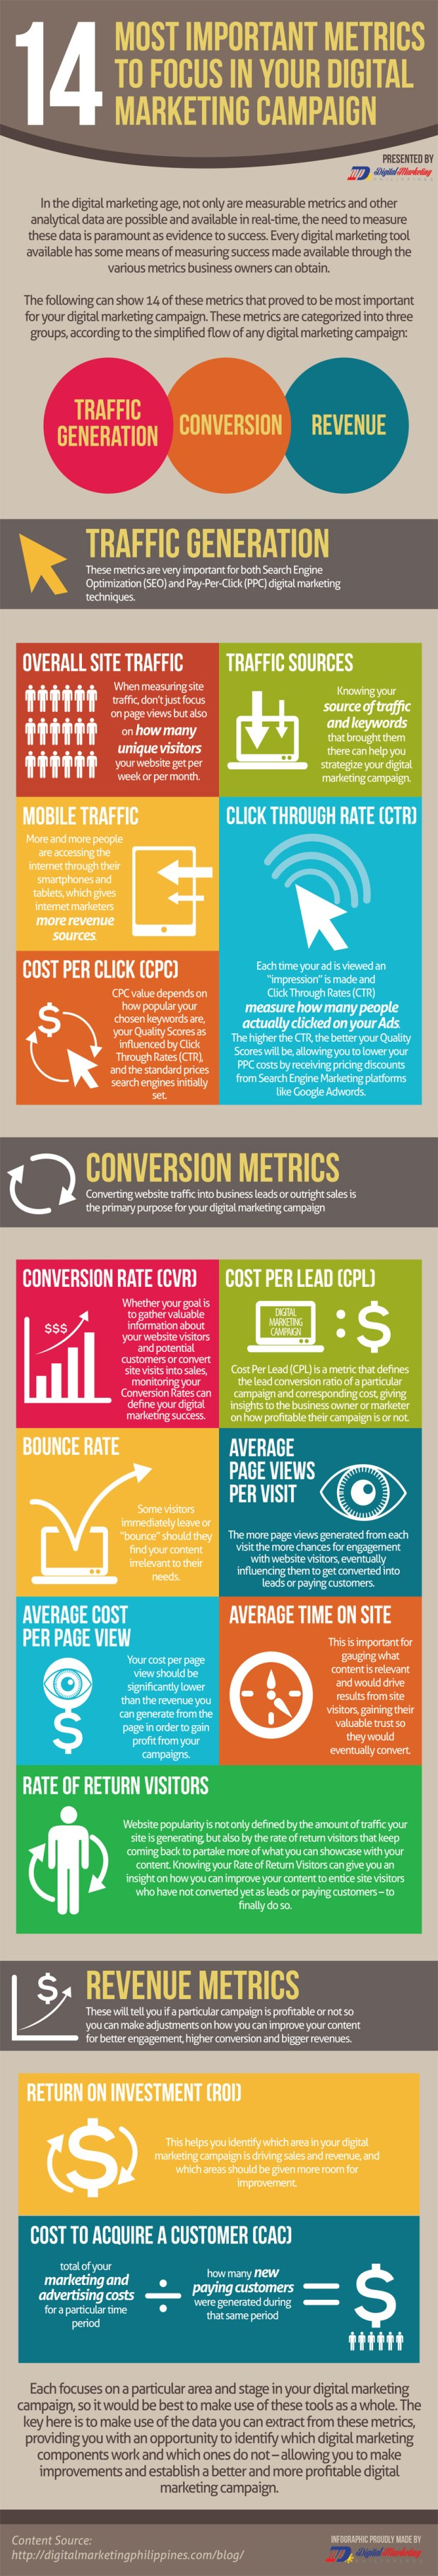 14-Most-Important-Metrics-to-Focus-in-Your-Digital-Marketing-Campaign